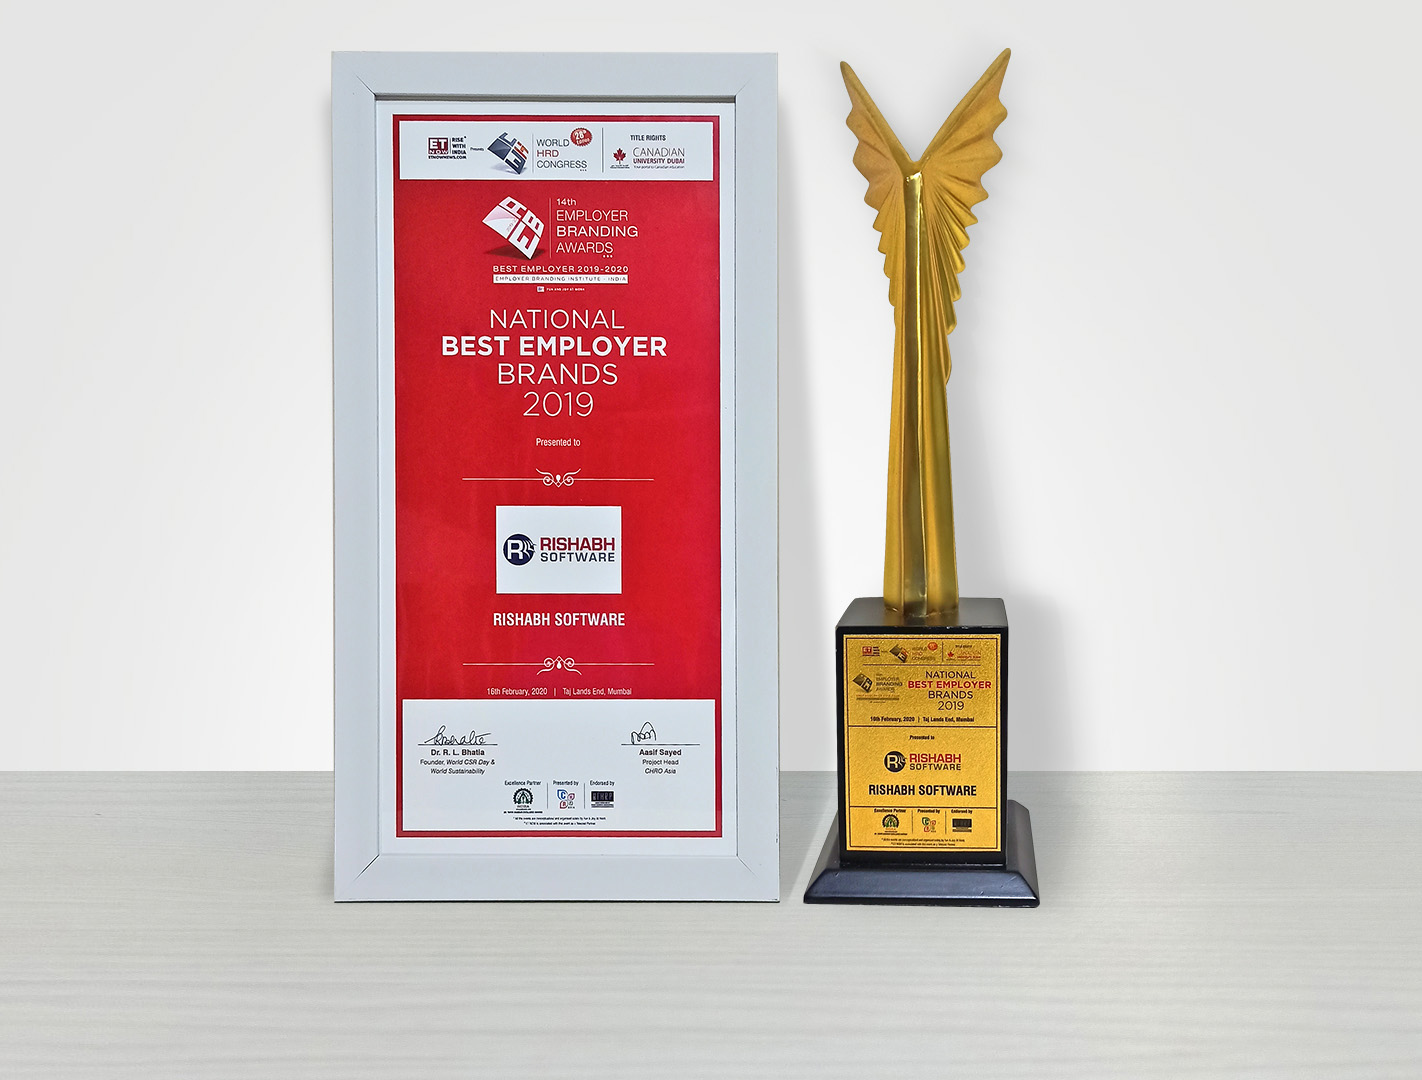 Felicitated as 'National Best Employer Brand' by World HRD Congress